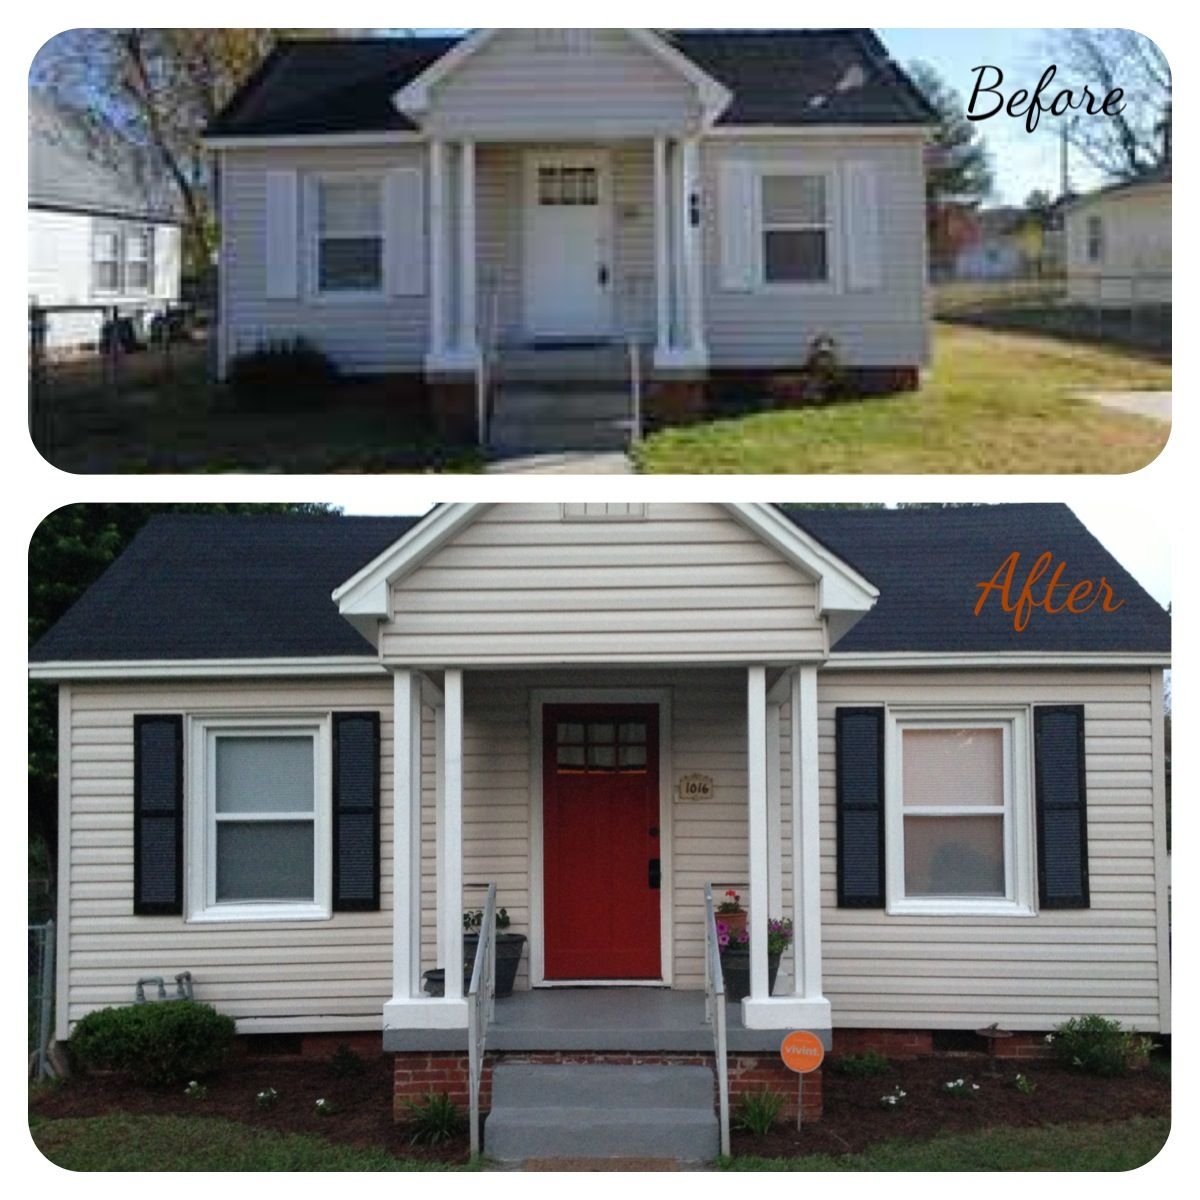 This Is Before And After On Our House We Wanted To Add Curb Appeal Painted Door And Replaced